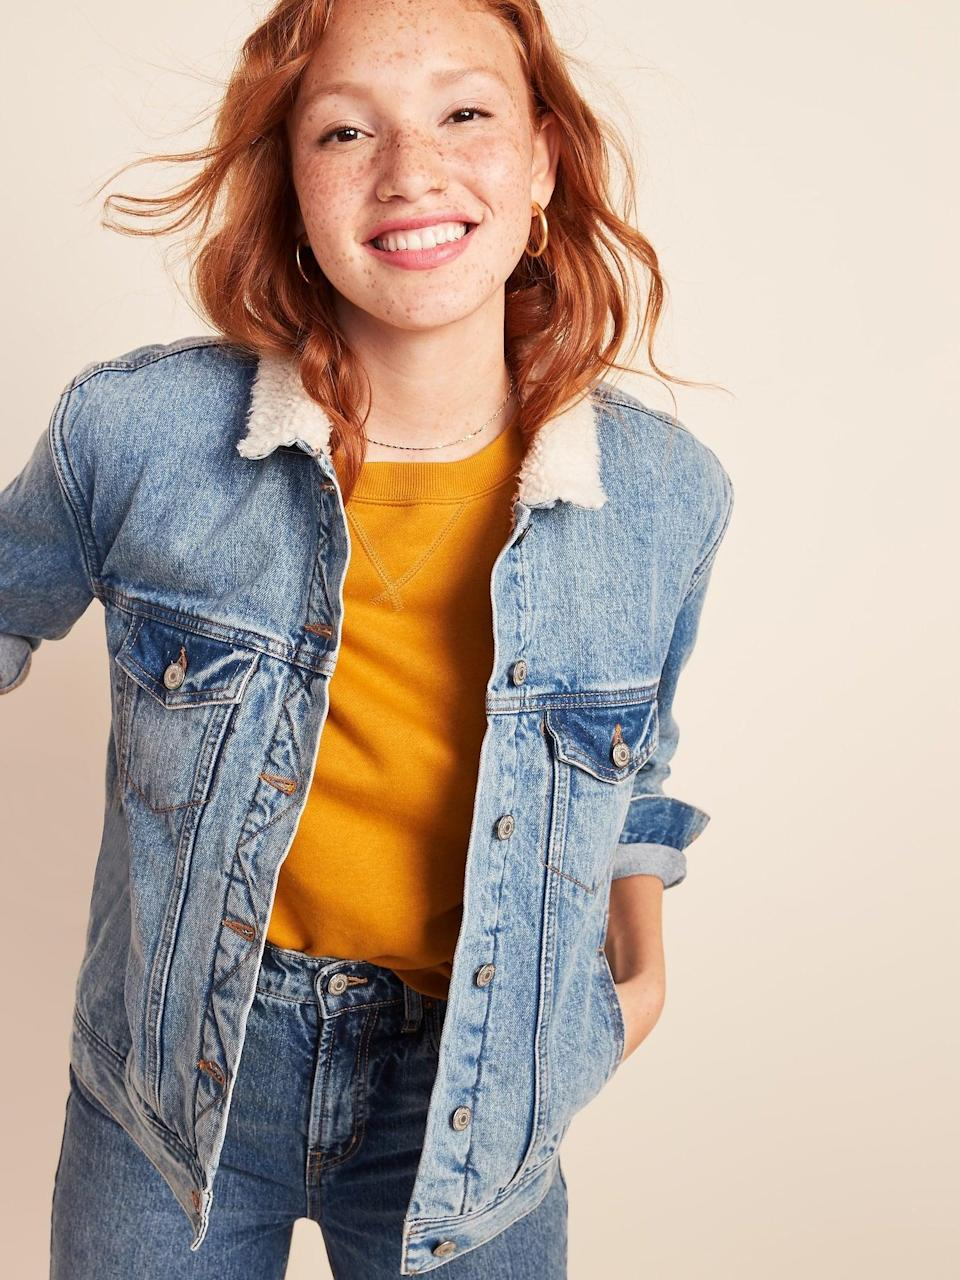 <p>The <span>Sherpa-Lined Boyfriend Jean Jacket</span> ($44, originally $55) is a great layering piece. Wear it over hoodies, long-sleeved tees, or even dresses depending on the temperature.</p>